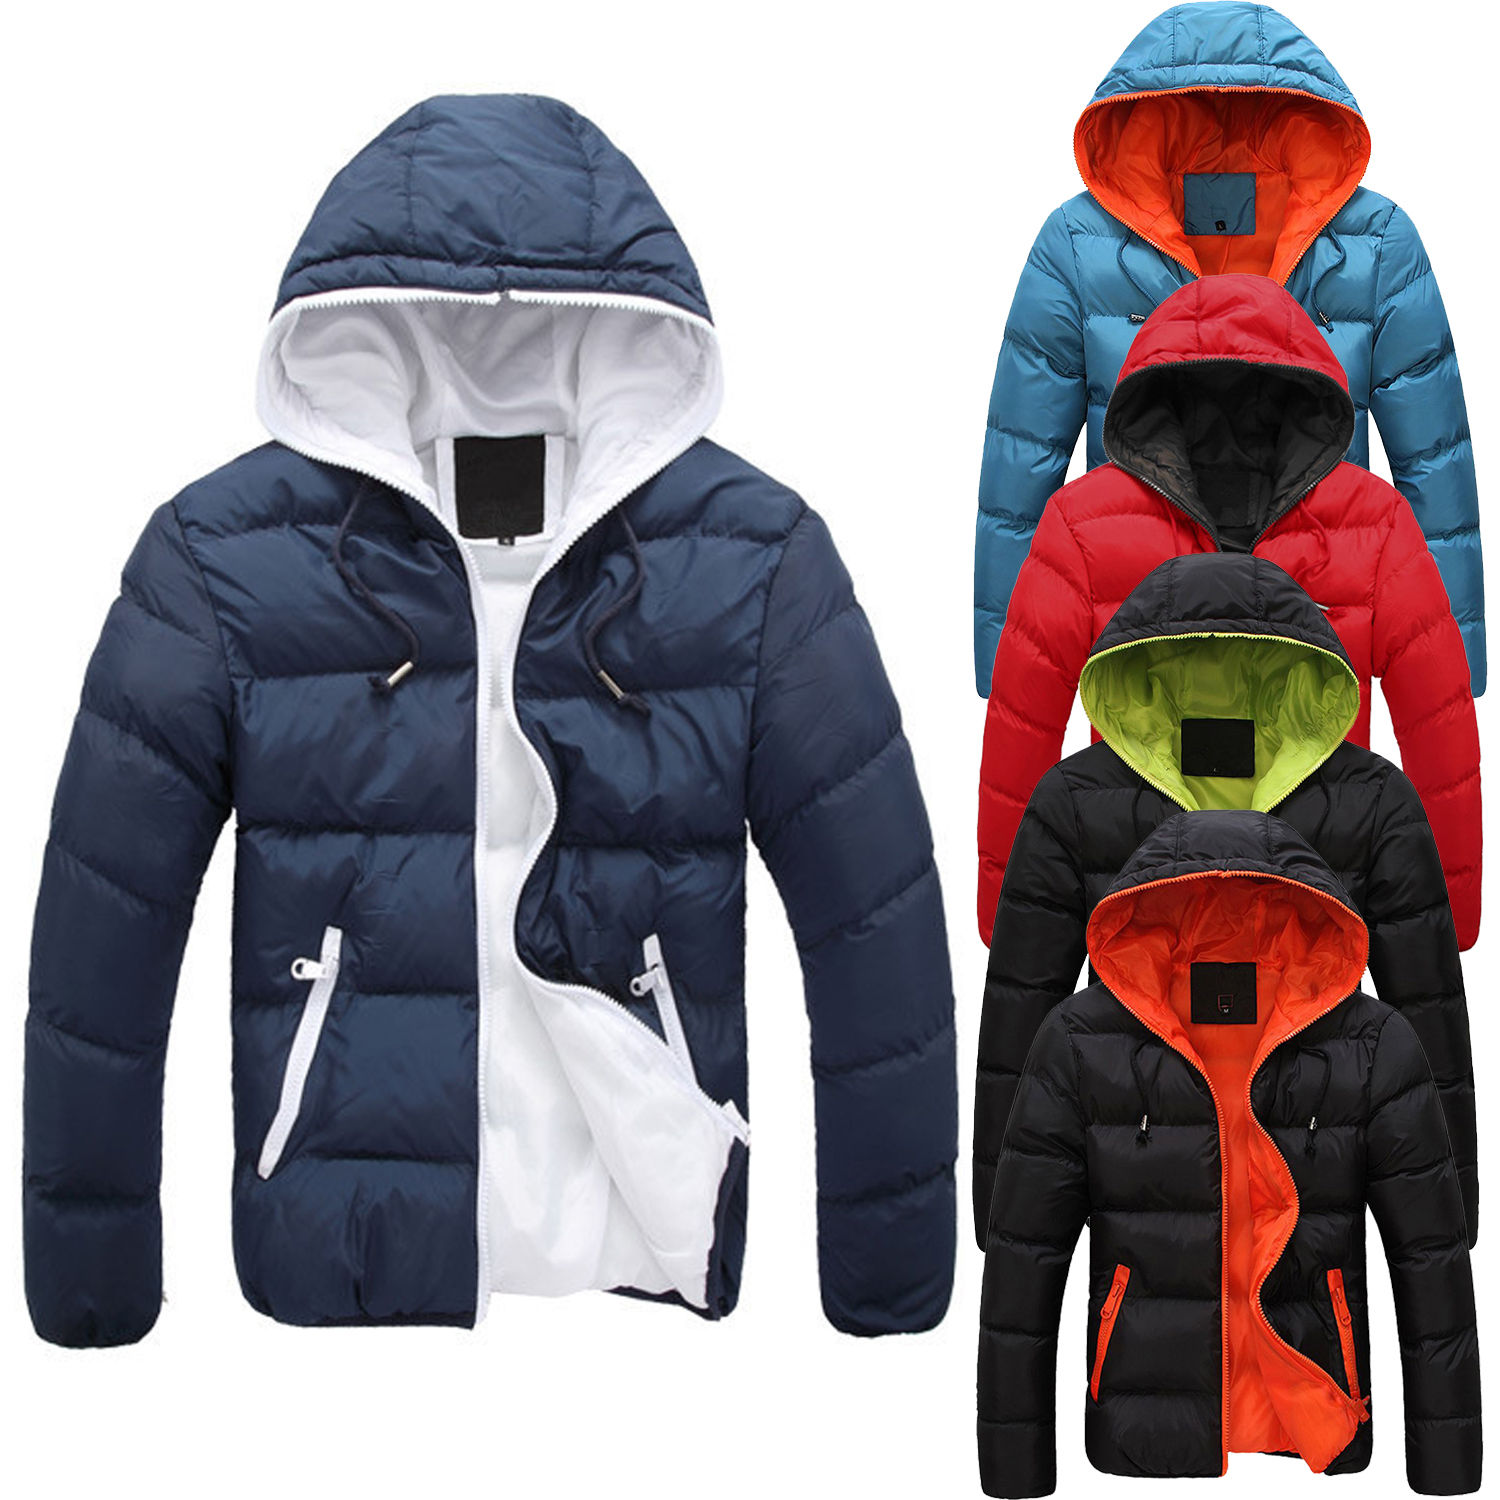 5 colors Mens Slim Casual Warm Jacket Hooded Winter Thick Coat Parka Overcoat  Hoodie New ClothesОдежда и ак�е��уары<br><br><br>Aliexpress